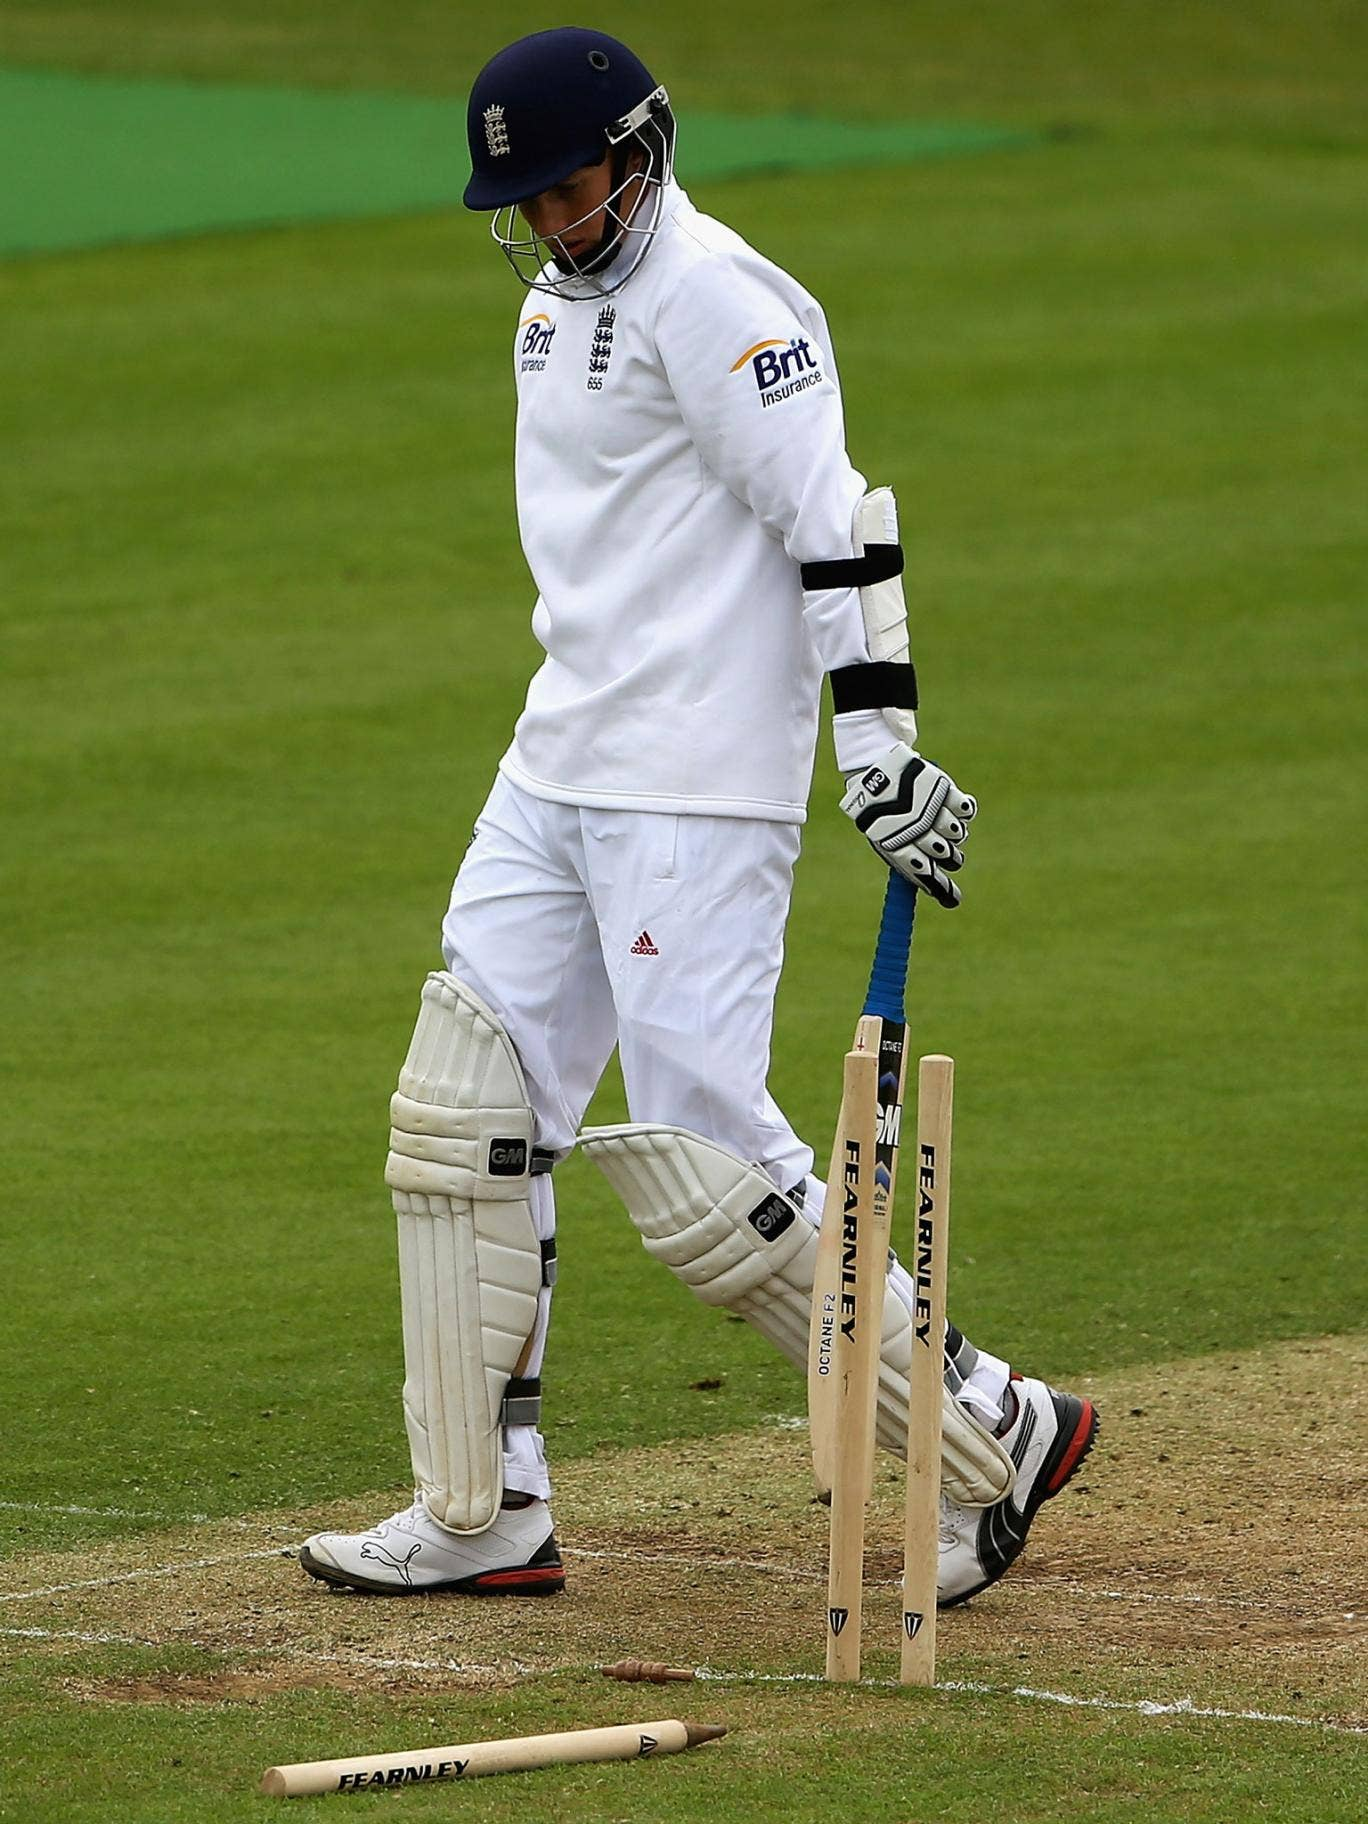 England Lions' Joe Root is bowled after making 179